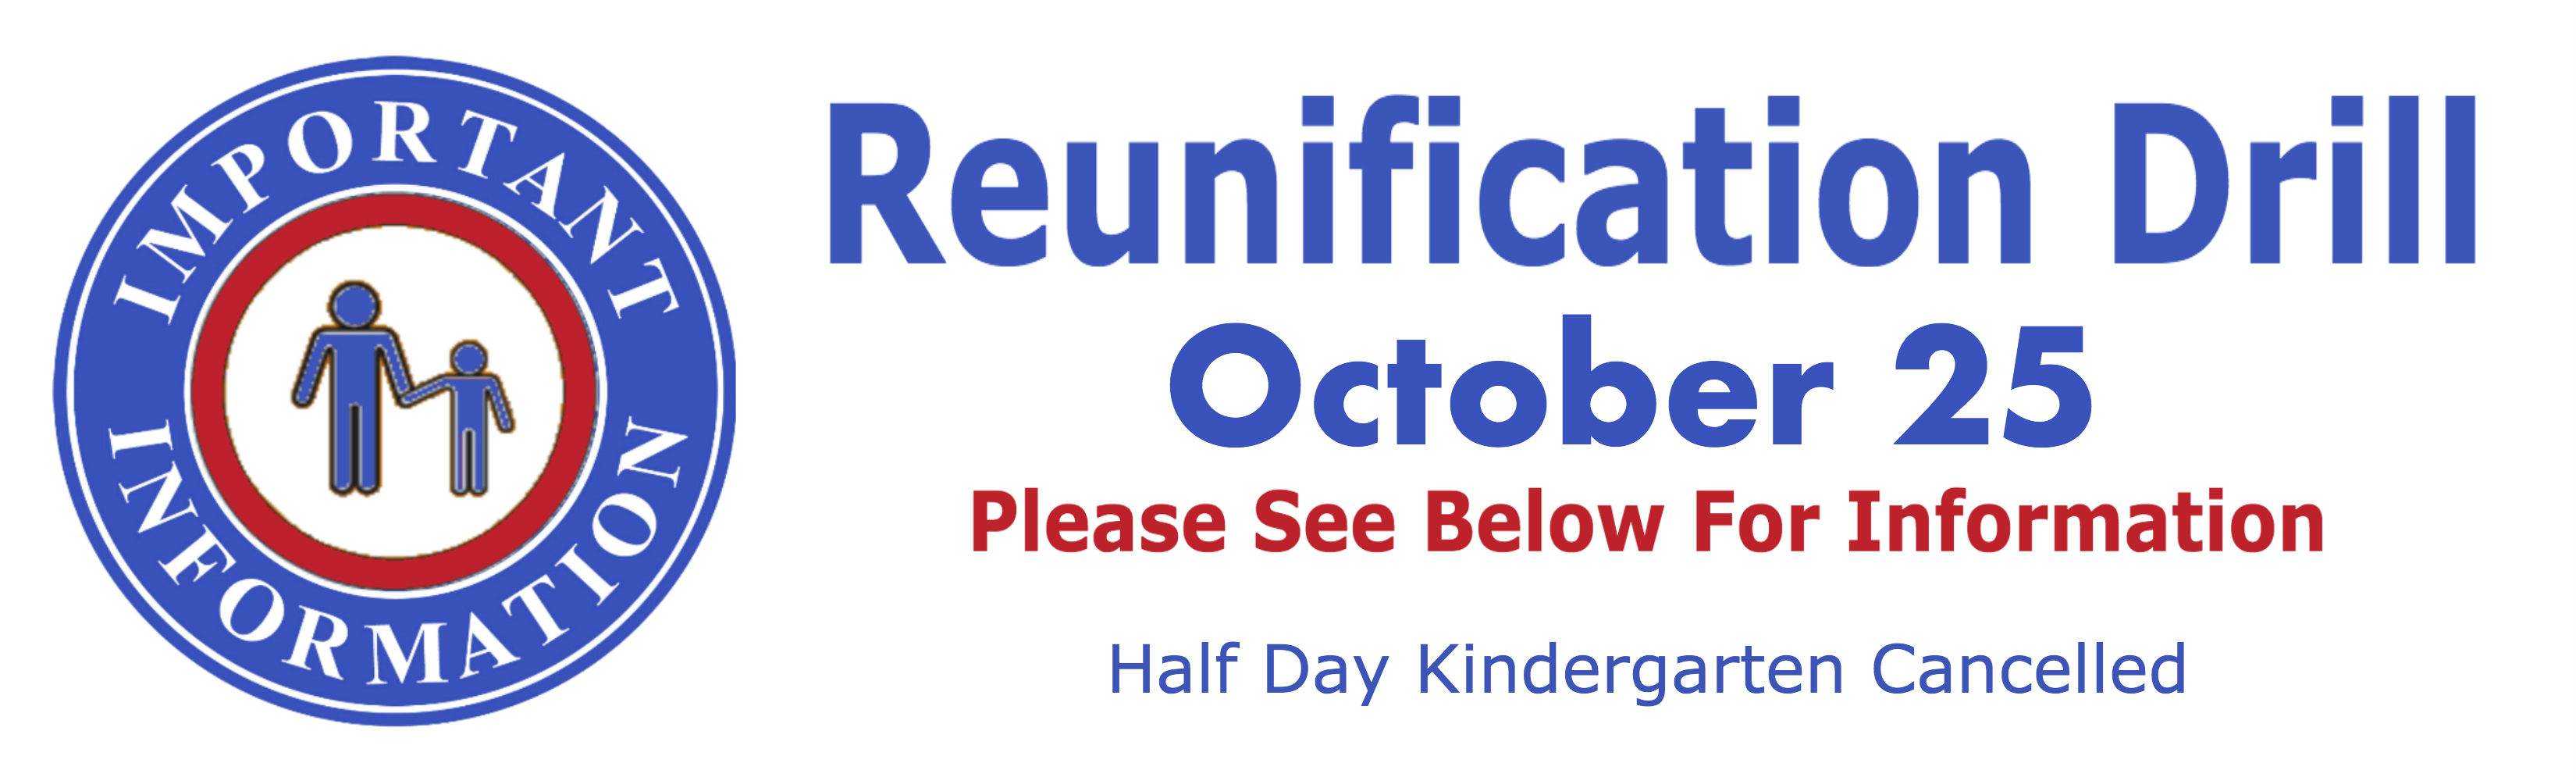 Reunification-Drill-Oct-25-Half-Day-Kinder-Cancel